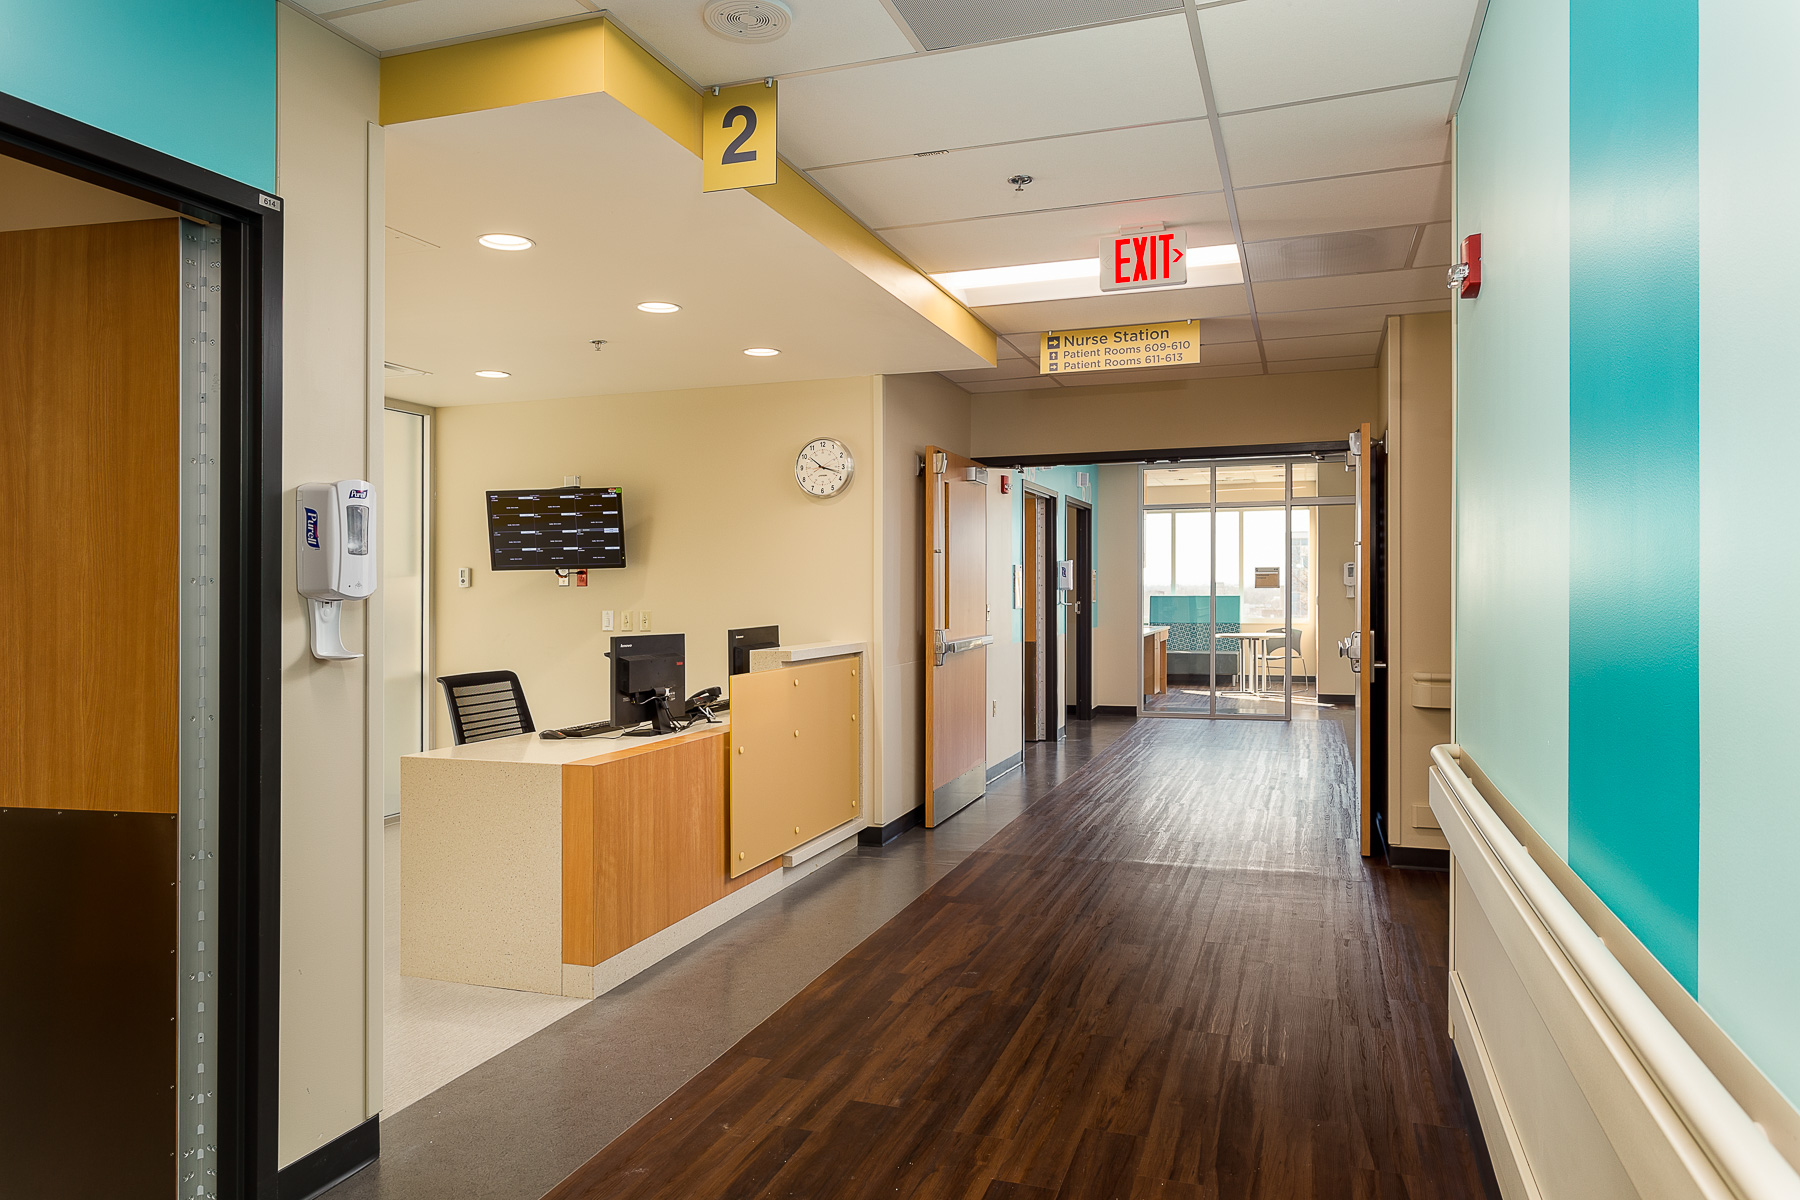 Latest Portion of $78 Million Renovation Project Opens to Patients